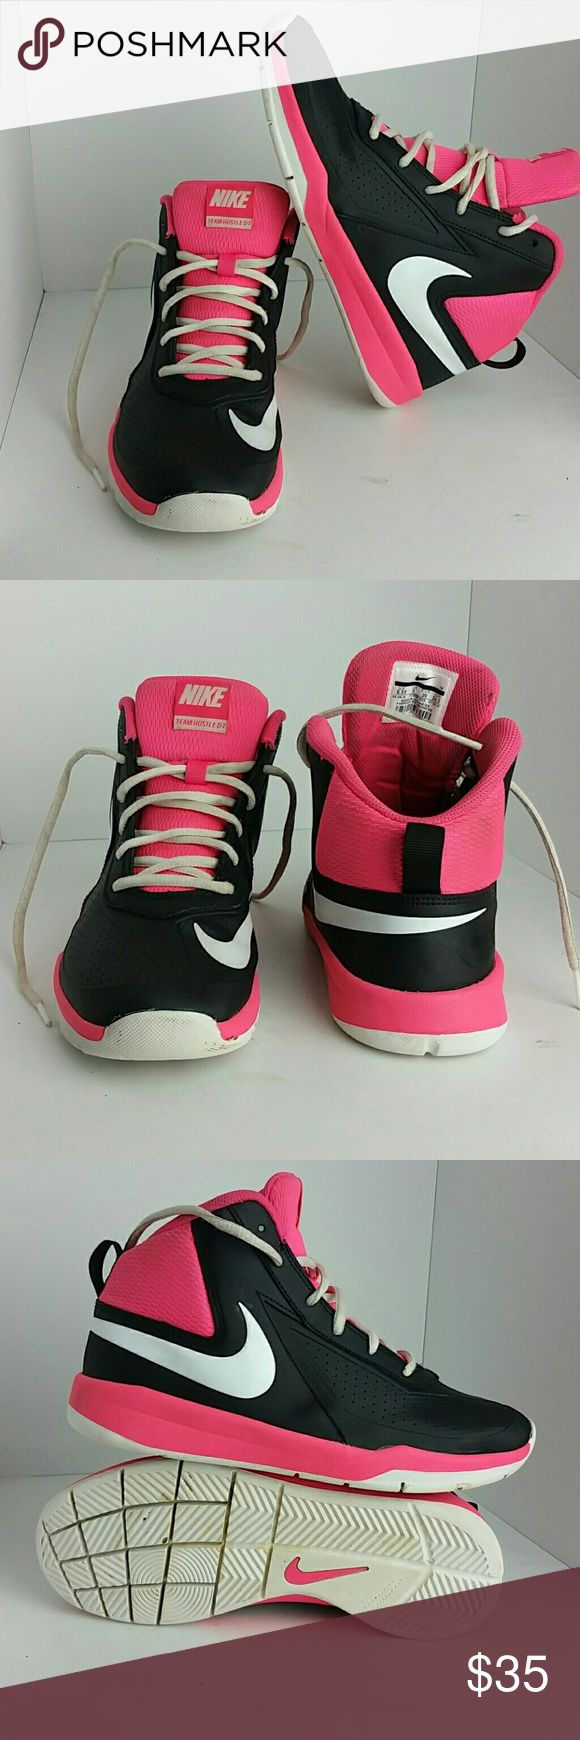 NIKE TEAM HUSTLE D7 WOMEN/YOUTH SHOES IN GOOD CONDITION   THIS IS A YOUTH SIZE 6.5Y WHICH IS WOMEN SIZE 8  SKE # TH NIKE Shoes Athletic Shoes